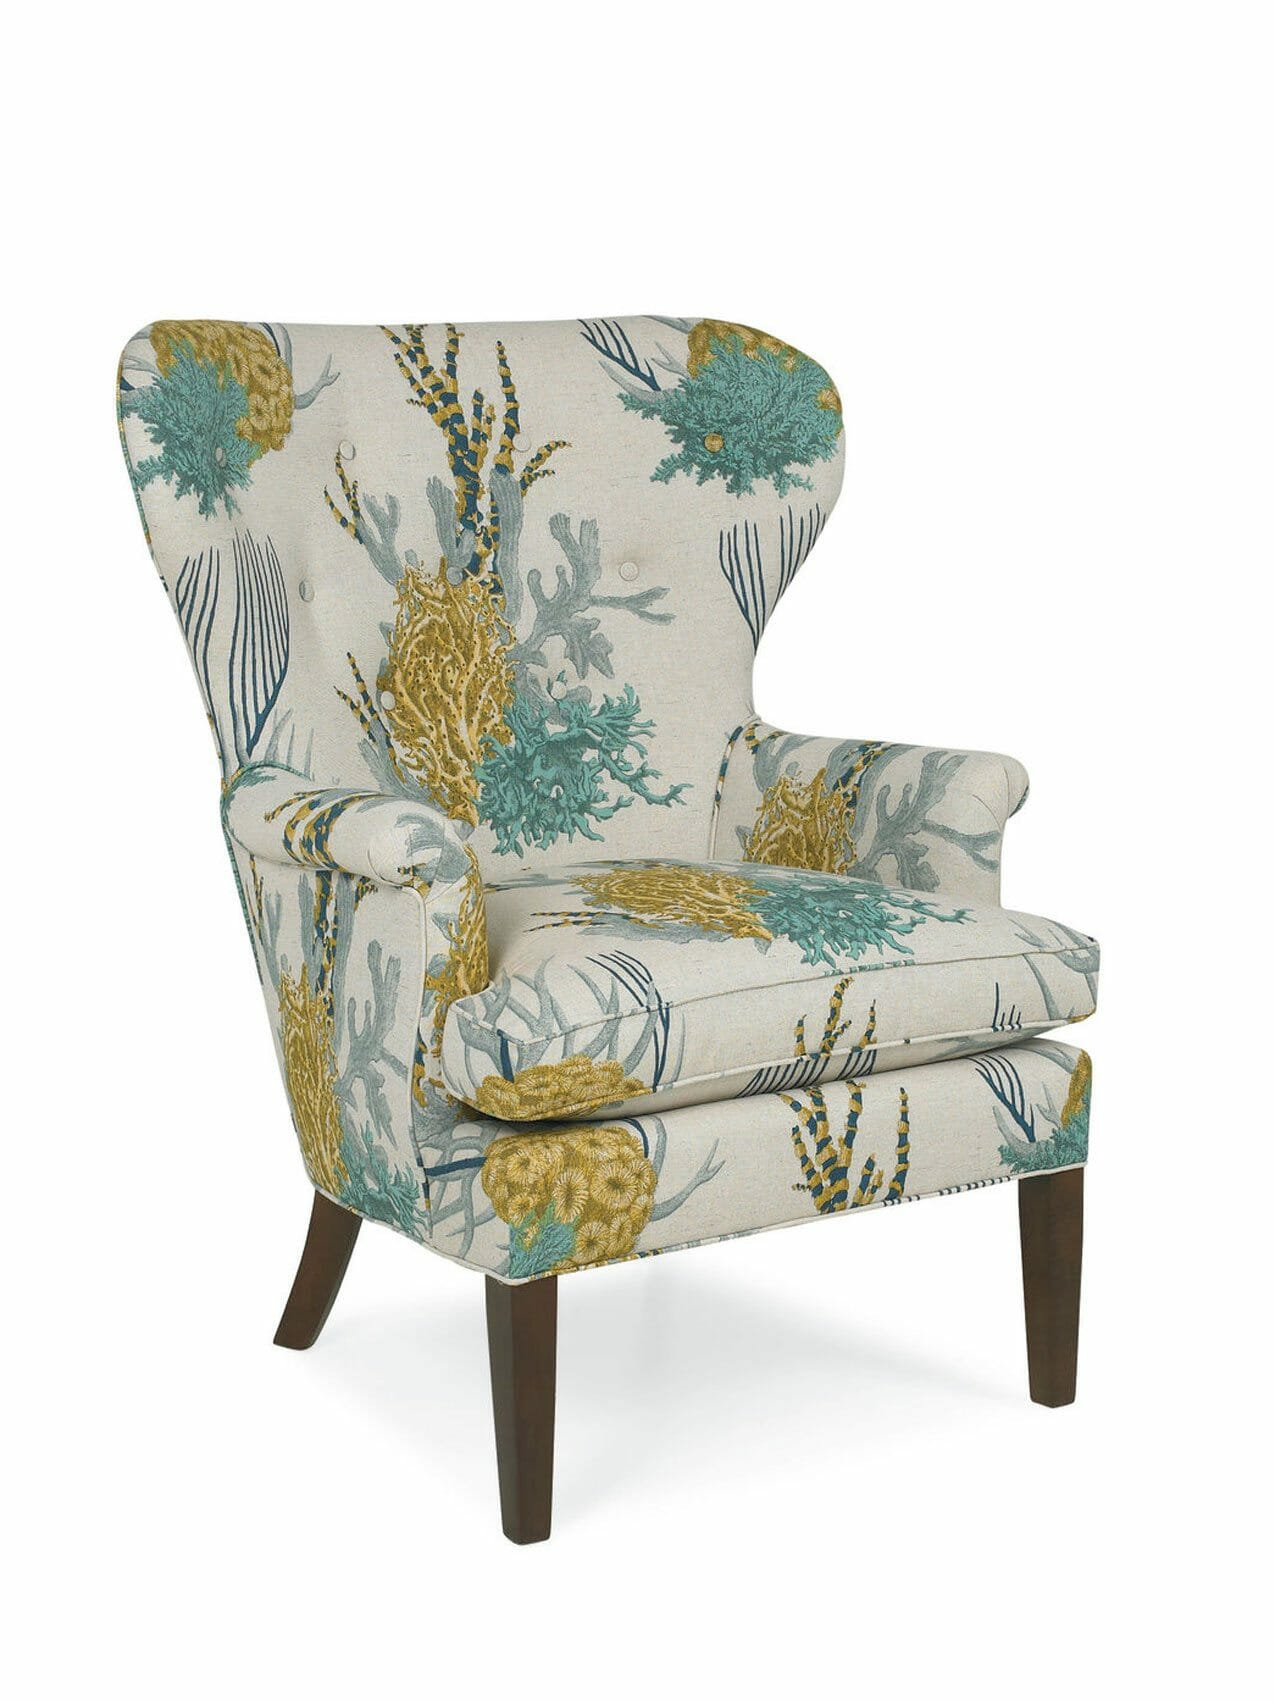 Upholstered Accent Chairs With Arms Avalon Upholstered Accent Chair Cottage Home